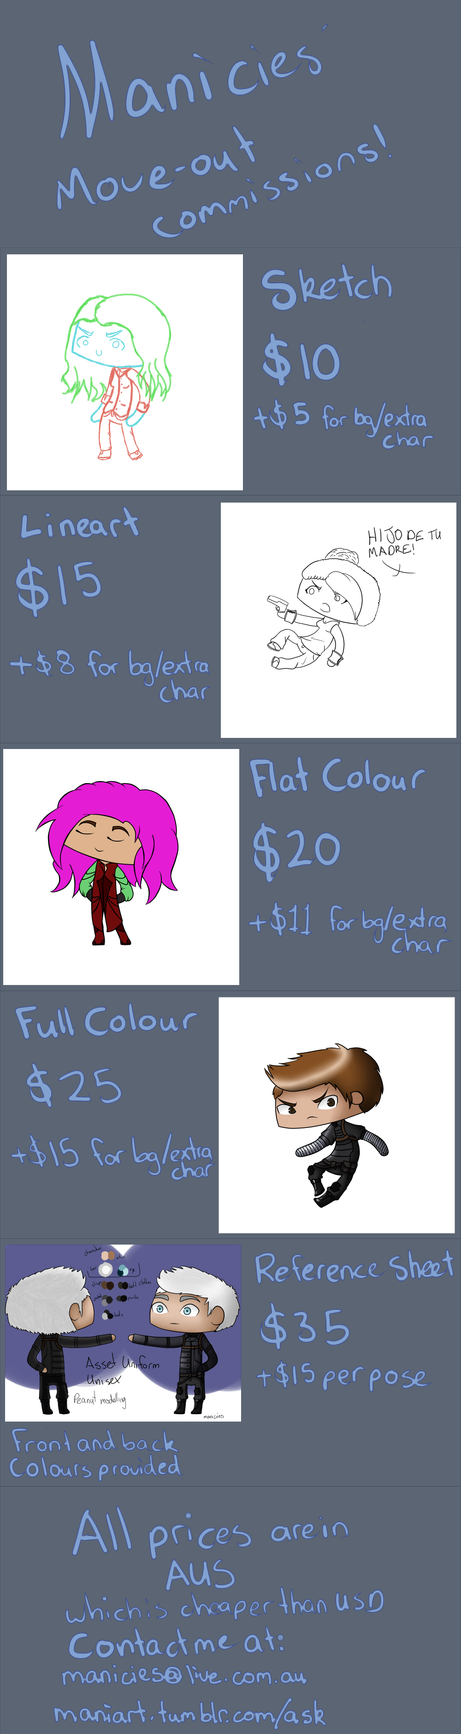 Comission Information by Manicies